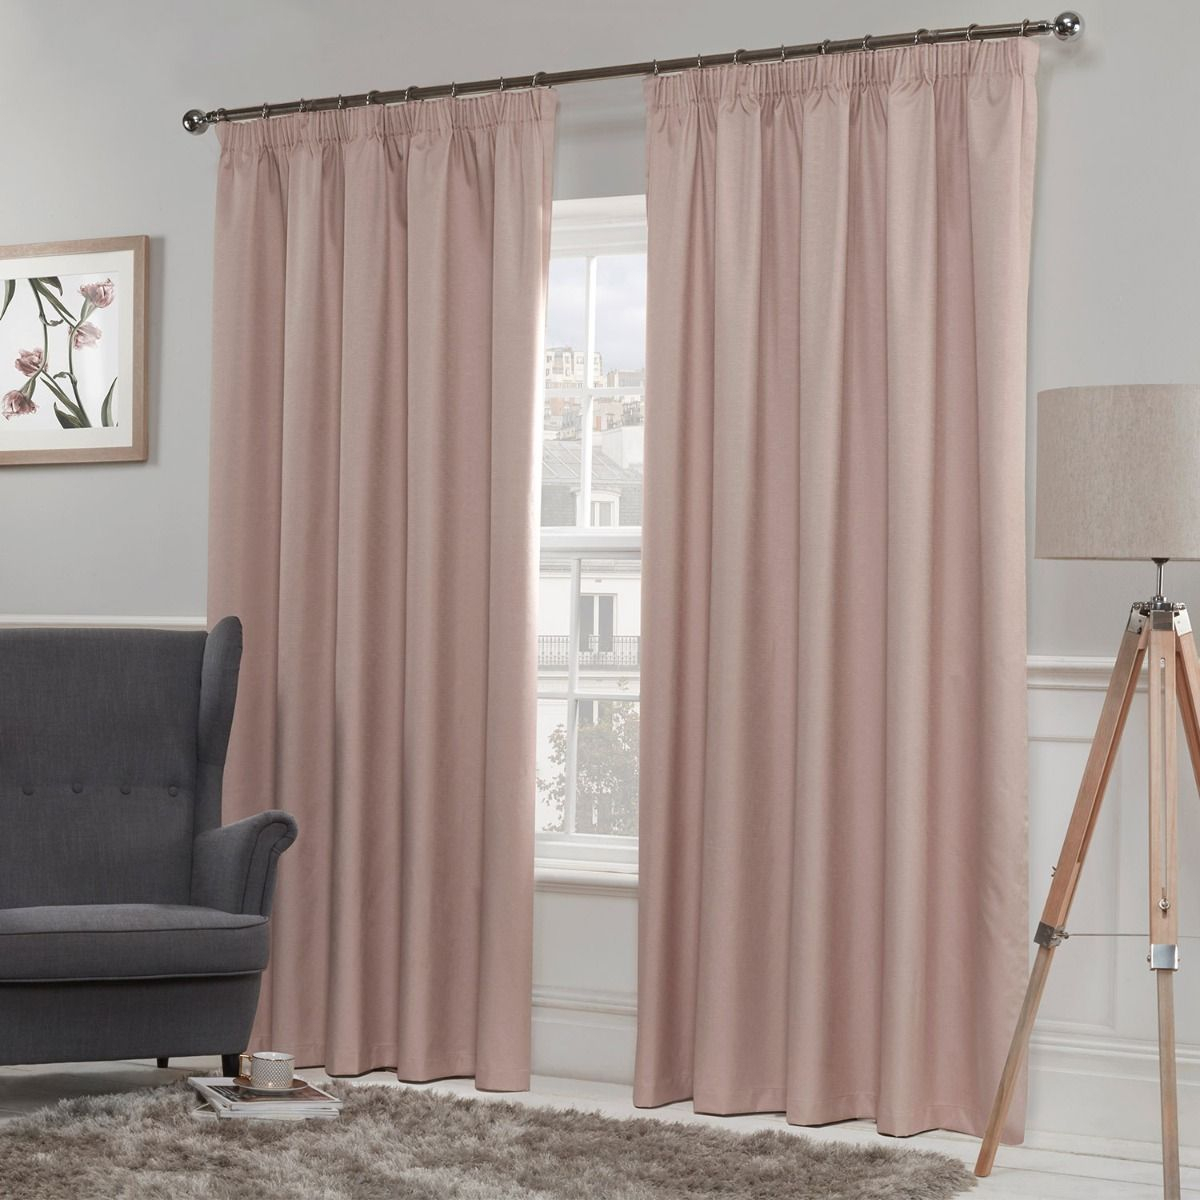 Luna Blush Luxury Thermal Blackout Eyelet Curtains Inside All Seasons Blackout Window Curtains (Image 17 of 20)